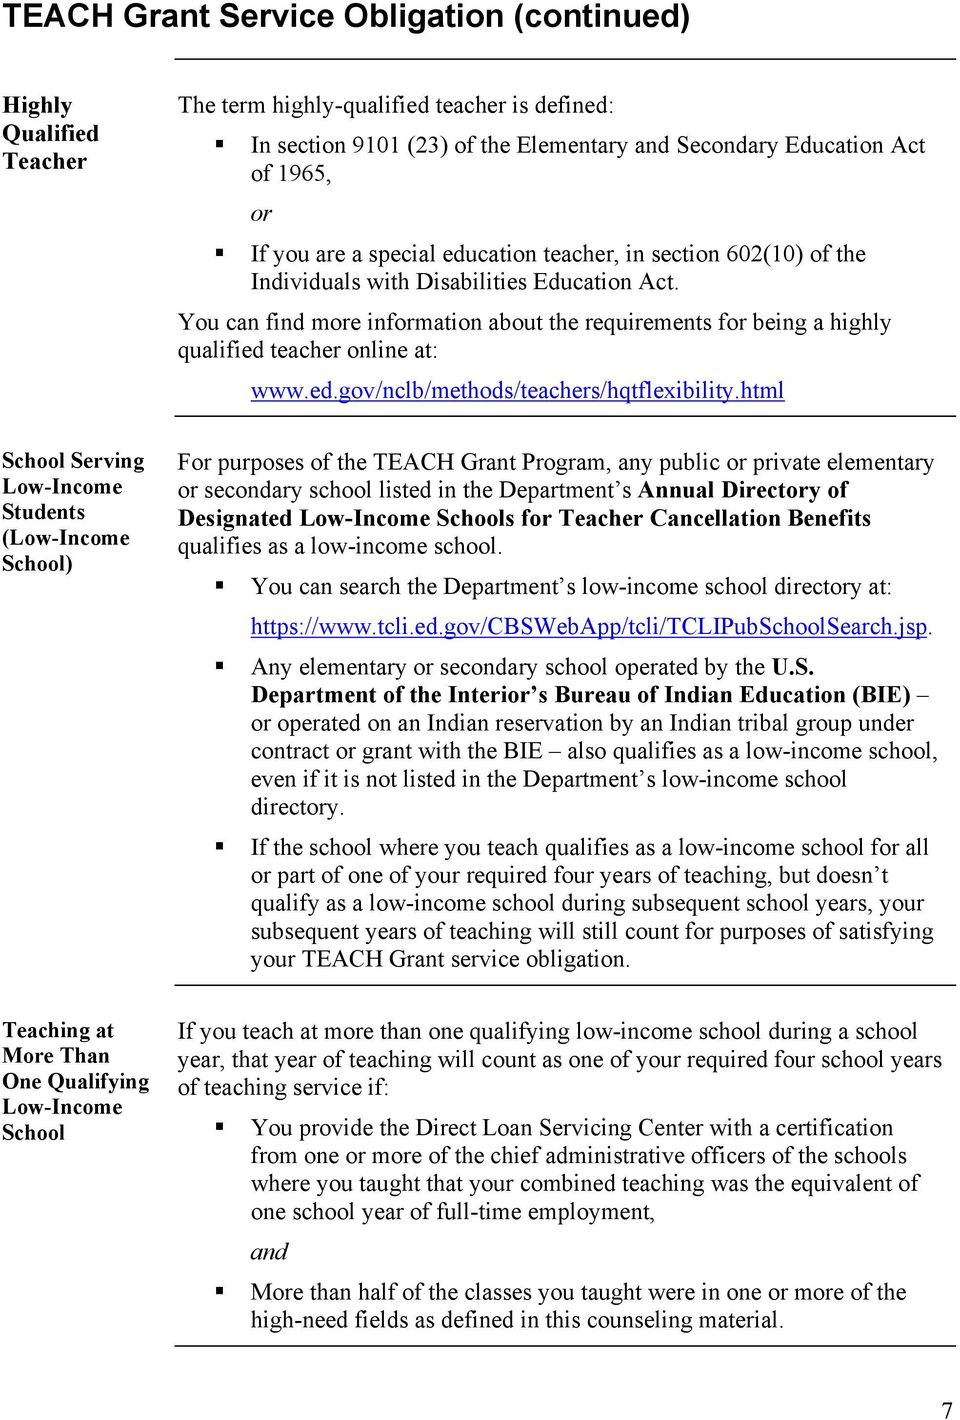 You can find more information about the requirements for being a highly qualified teacher online at: www.ed.gov/nclb/methods/teachers/hqtflexibility.